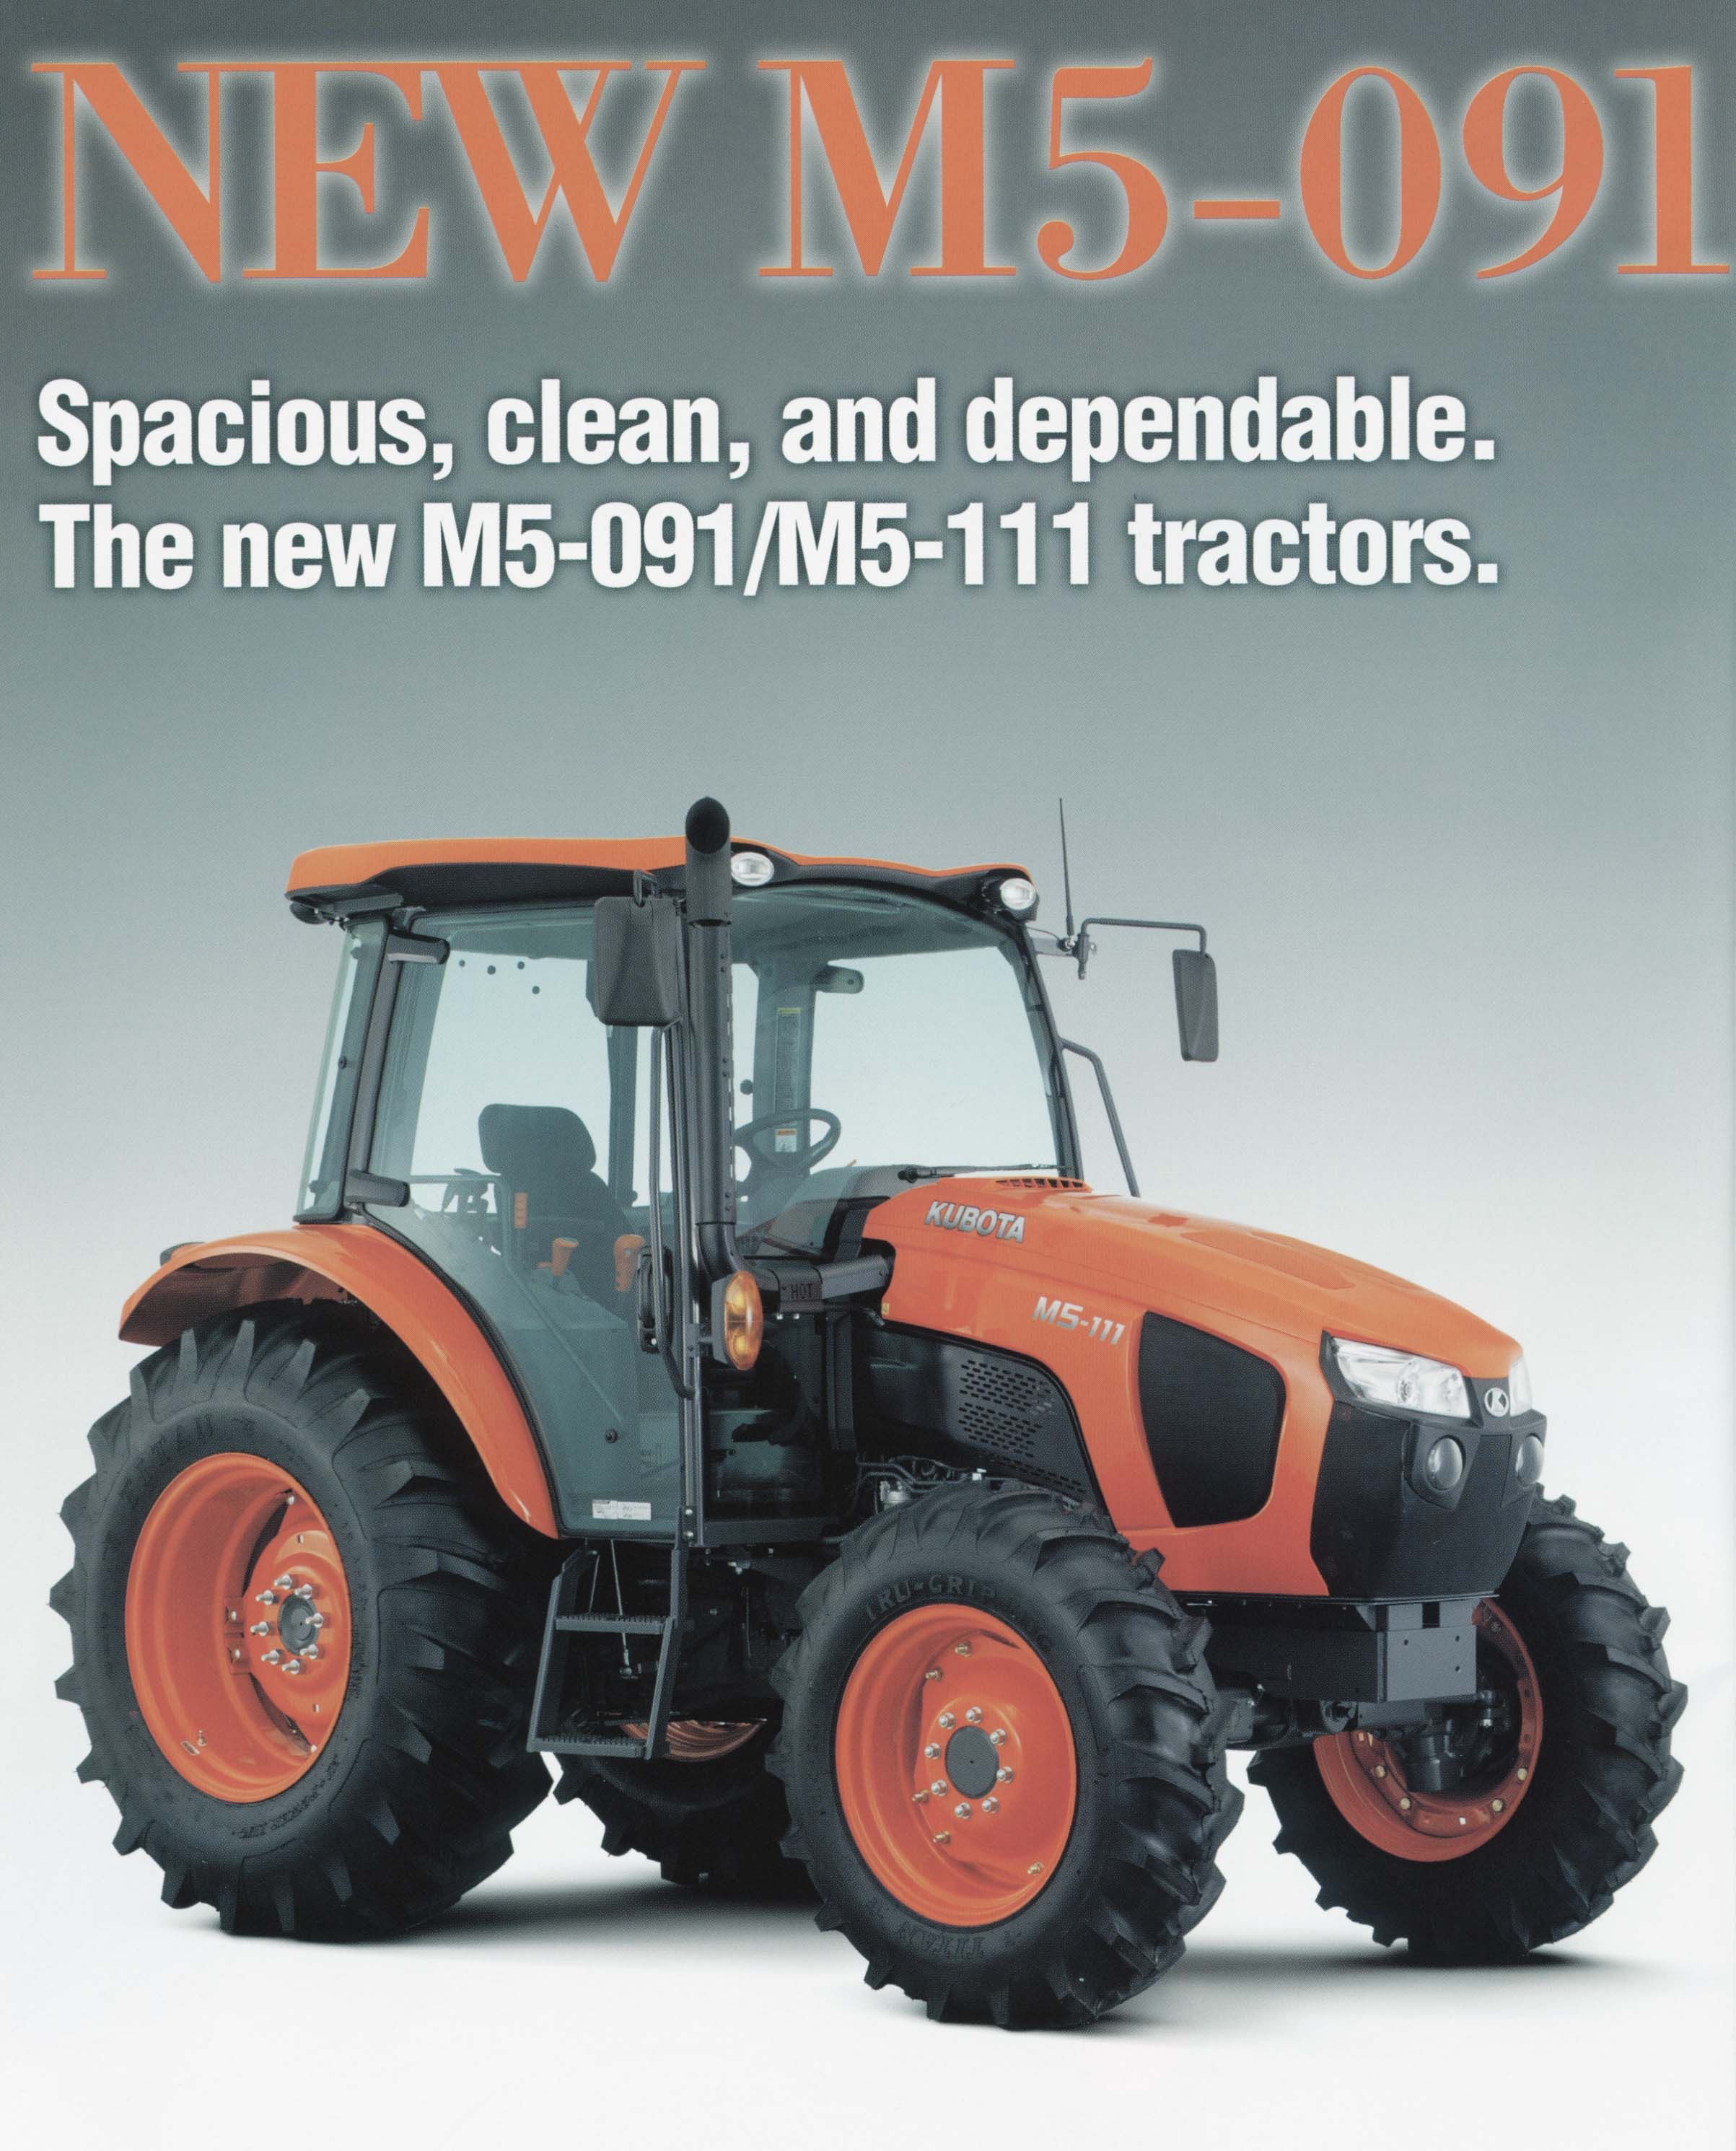 Kubota tractors for sale in kentucky - The New Kubota Tractors Will Be Arriving At Great Plains Kubota This Fall